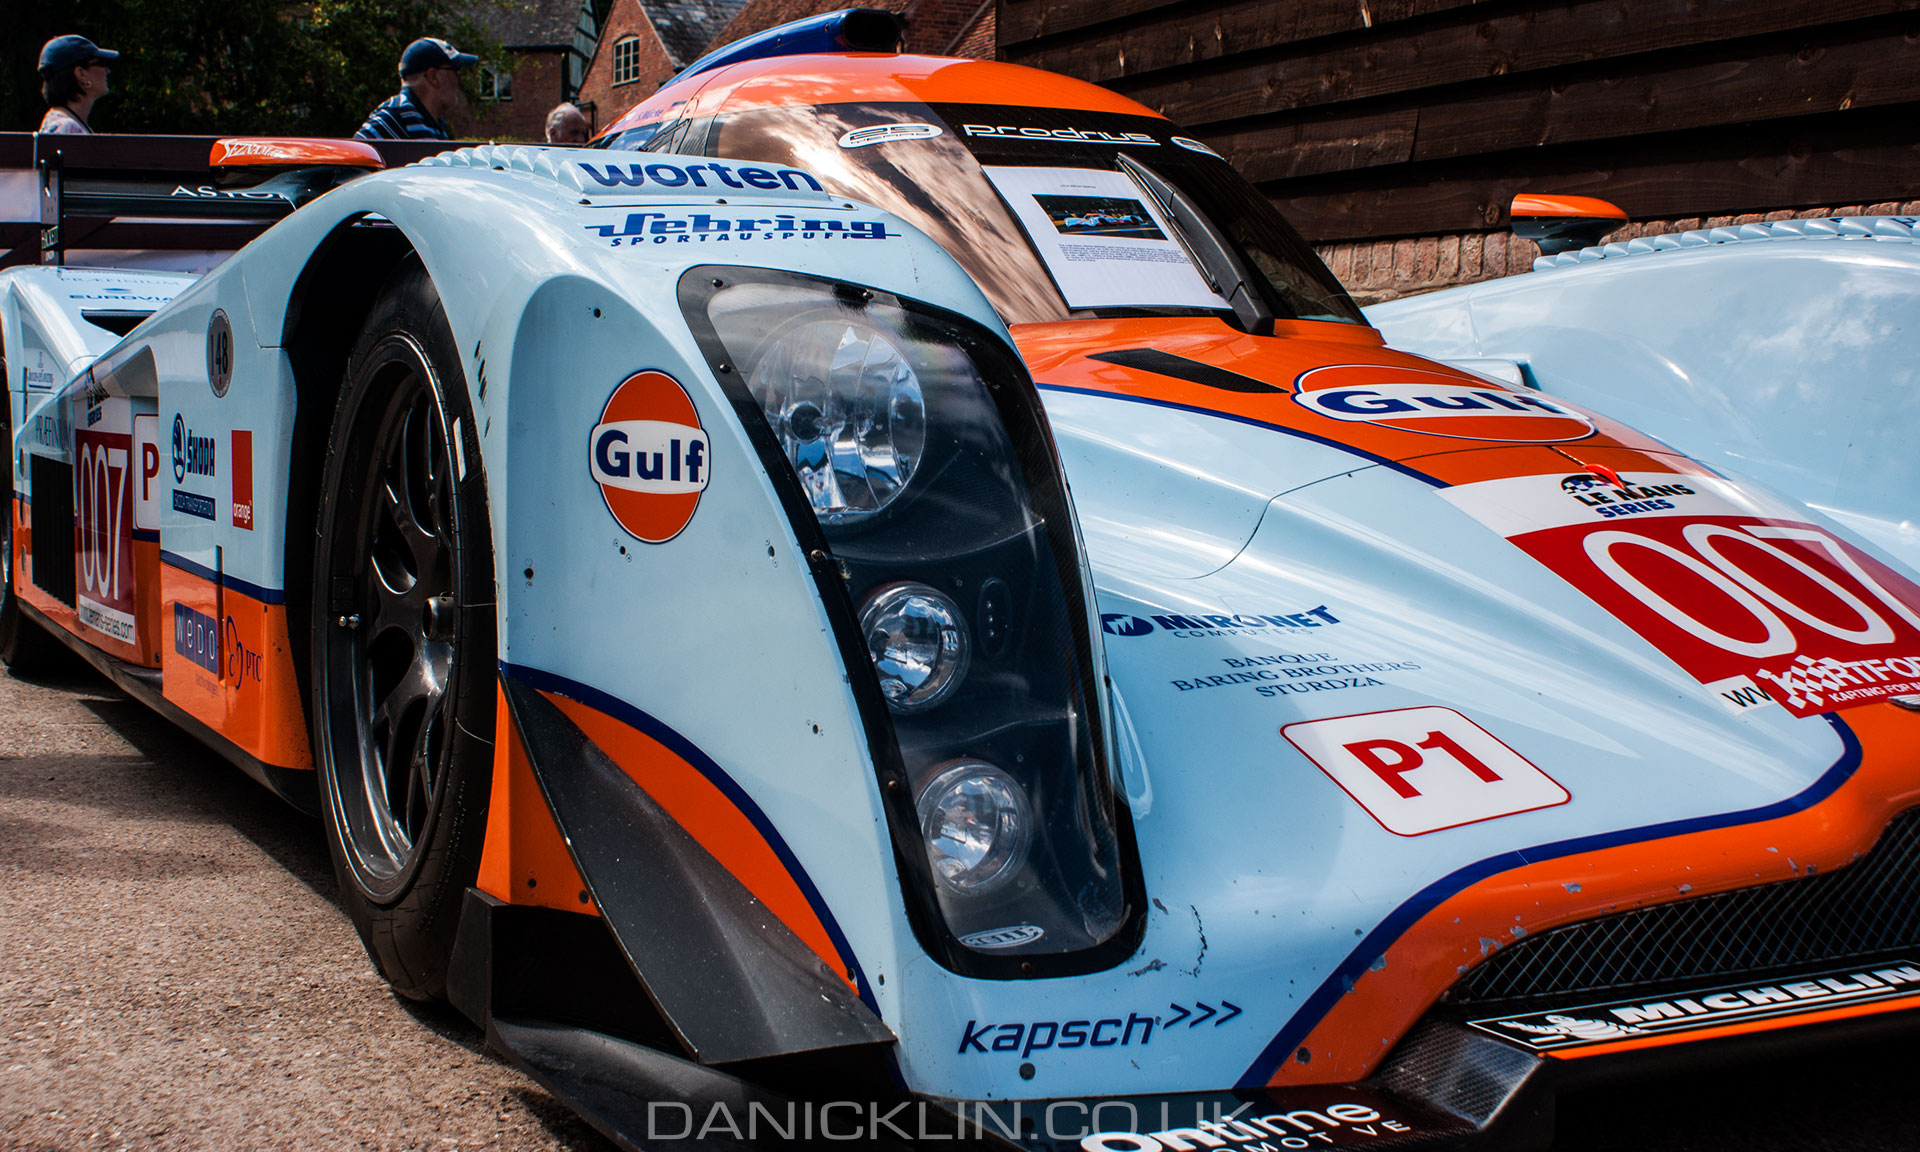 First Aston Martin Prototype race car for two decades